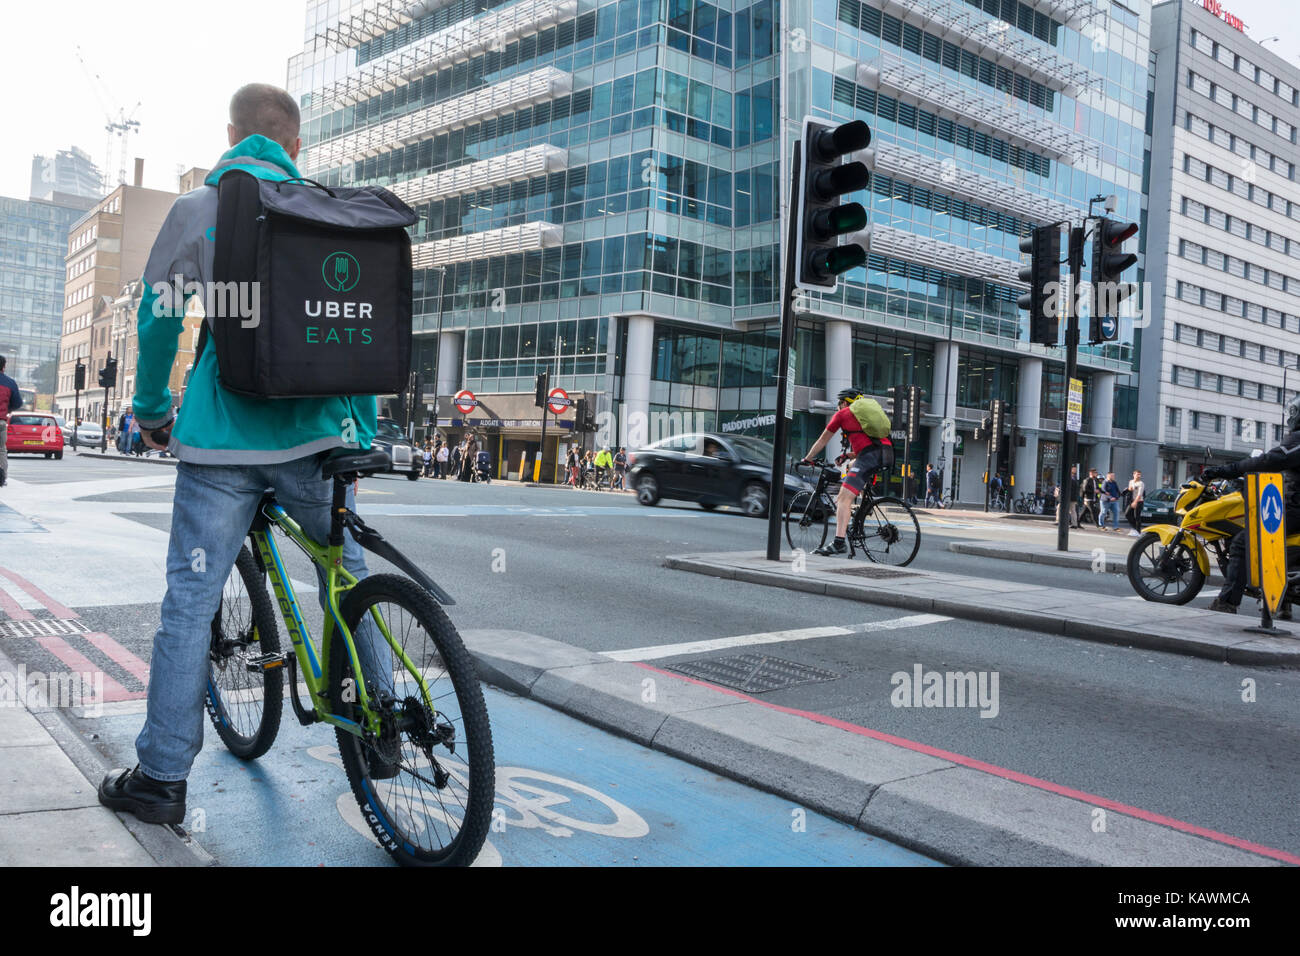 An Uber Eats delivery cyclist outside Uber Headquarters in Aldgate